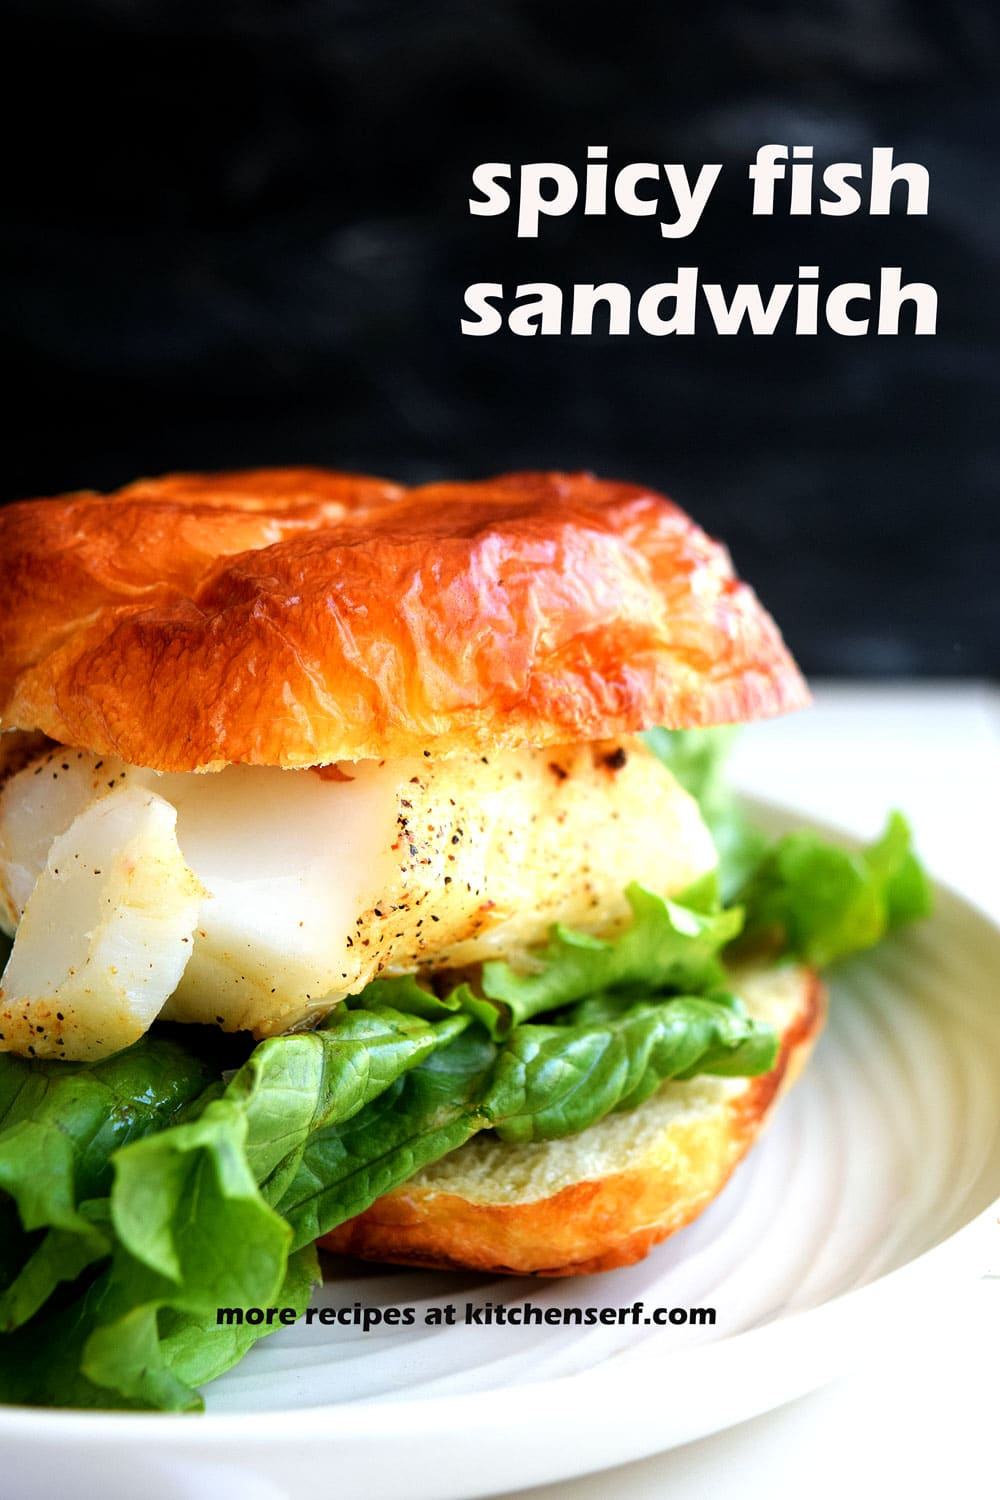 fish sandwich with lettuce leaves on off-white round plate